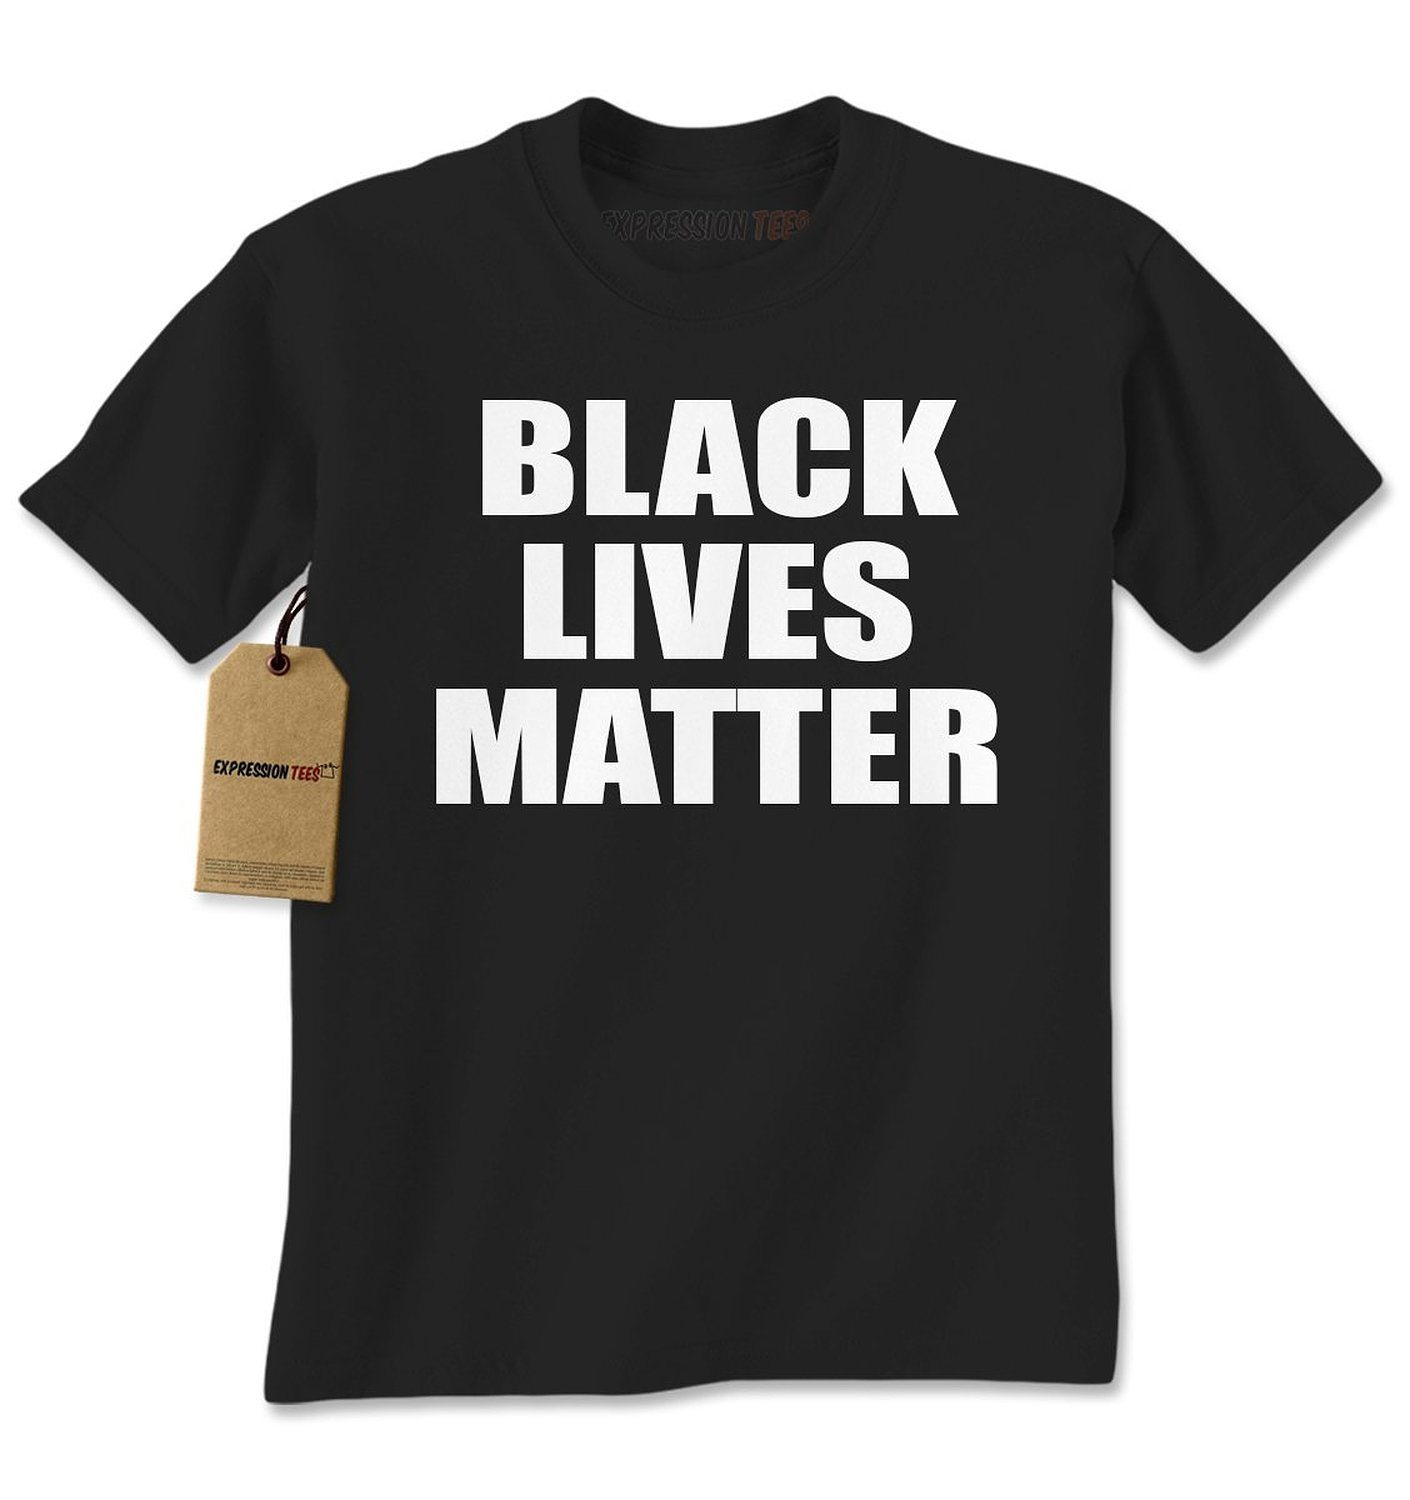 Expression Tees Black Lives Matter Civil Rights For All Mens